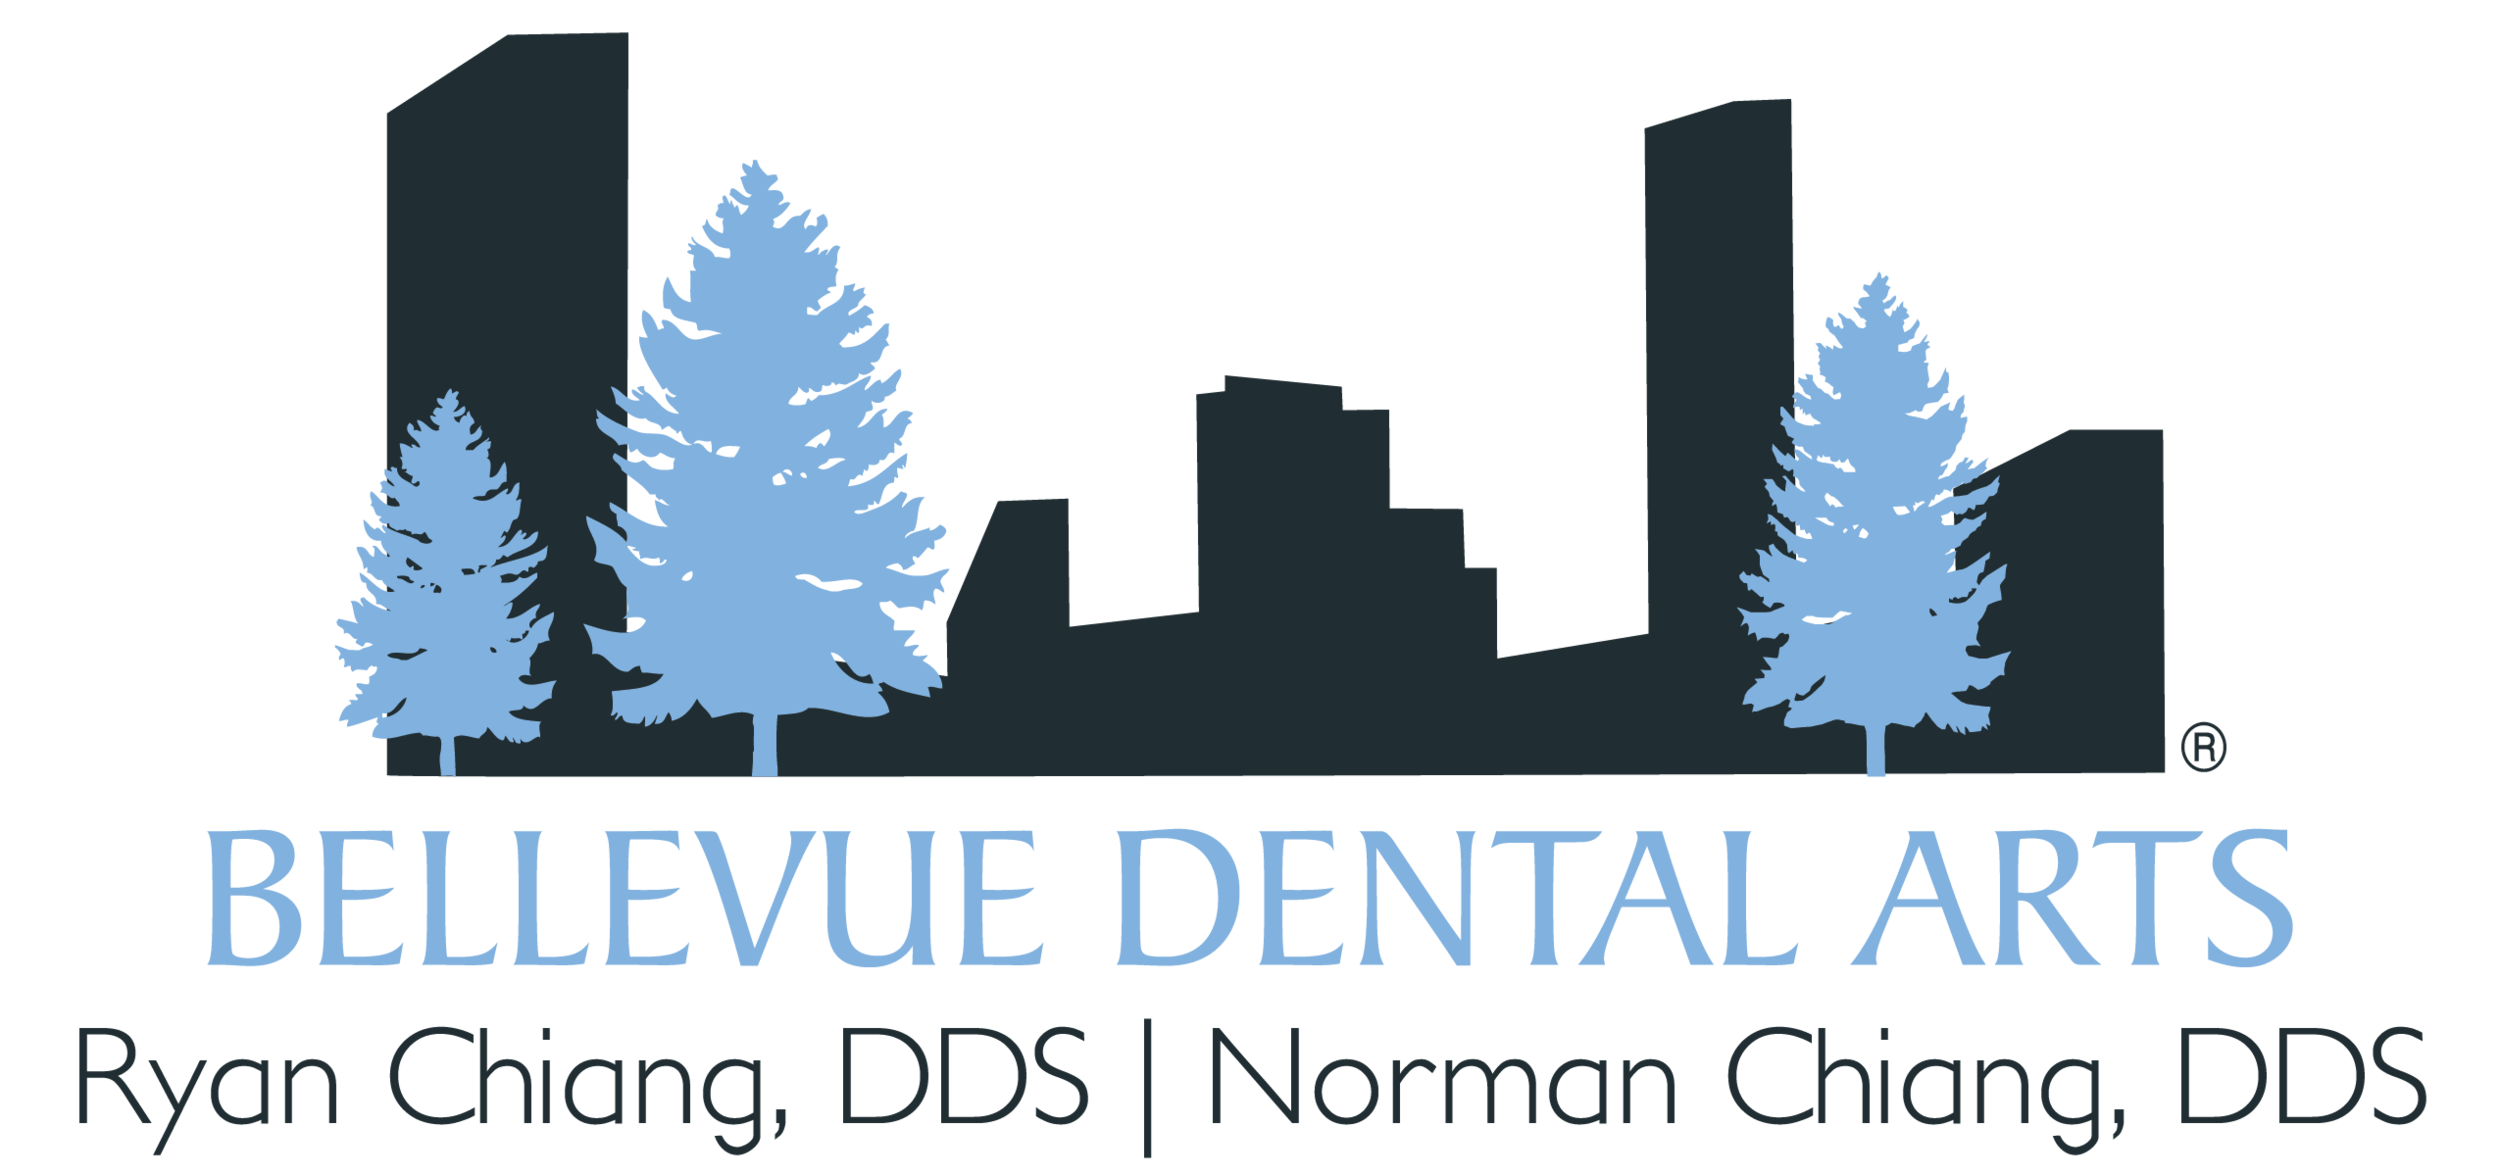 Bellevue Dentist Bellevue Dental Arts Logo